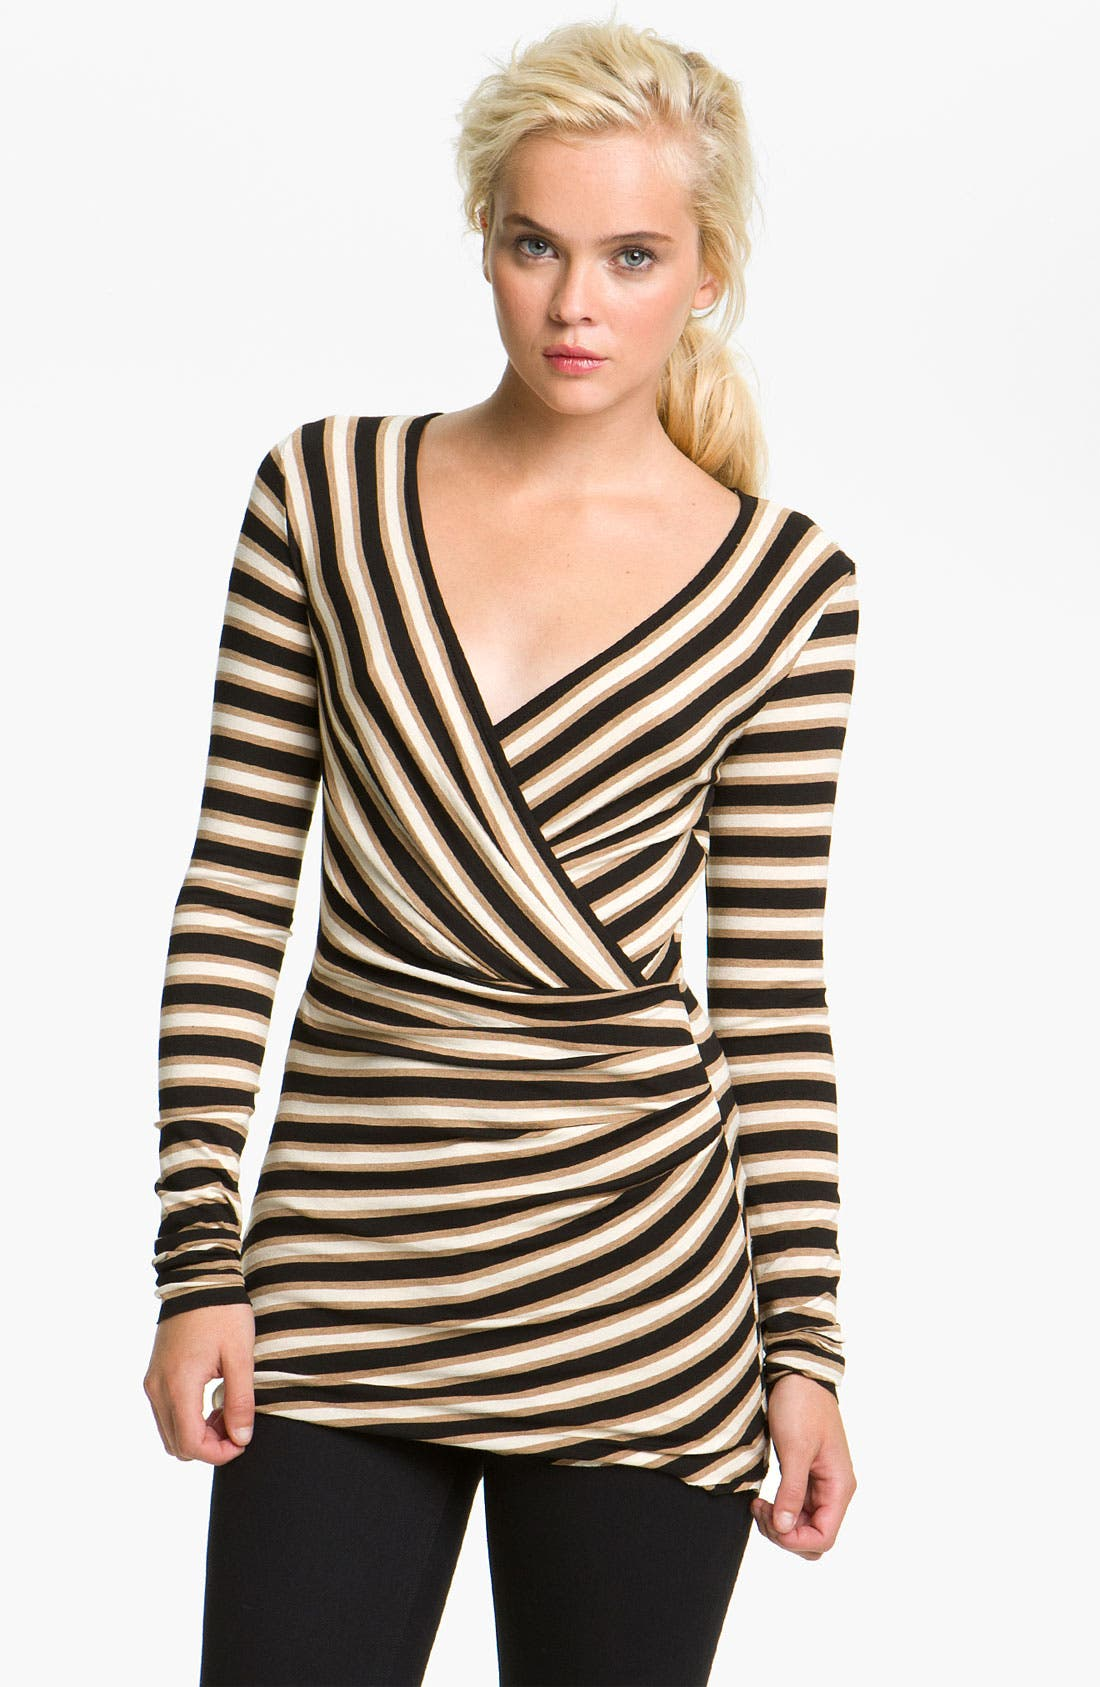 Alternate Image 1 Selected - Bailey 44 'Princeton' Stripe Surplice Top